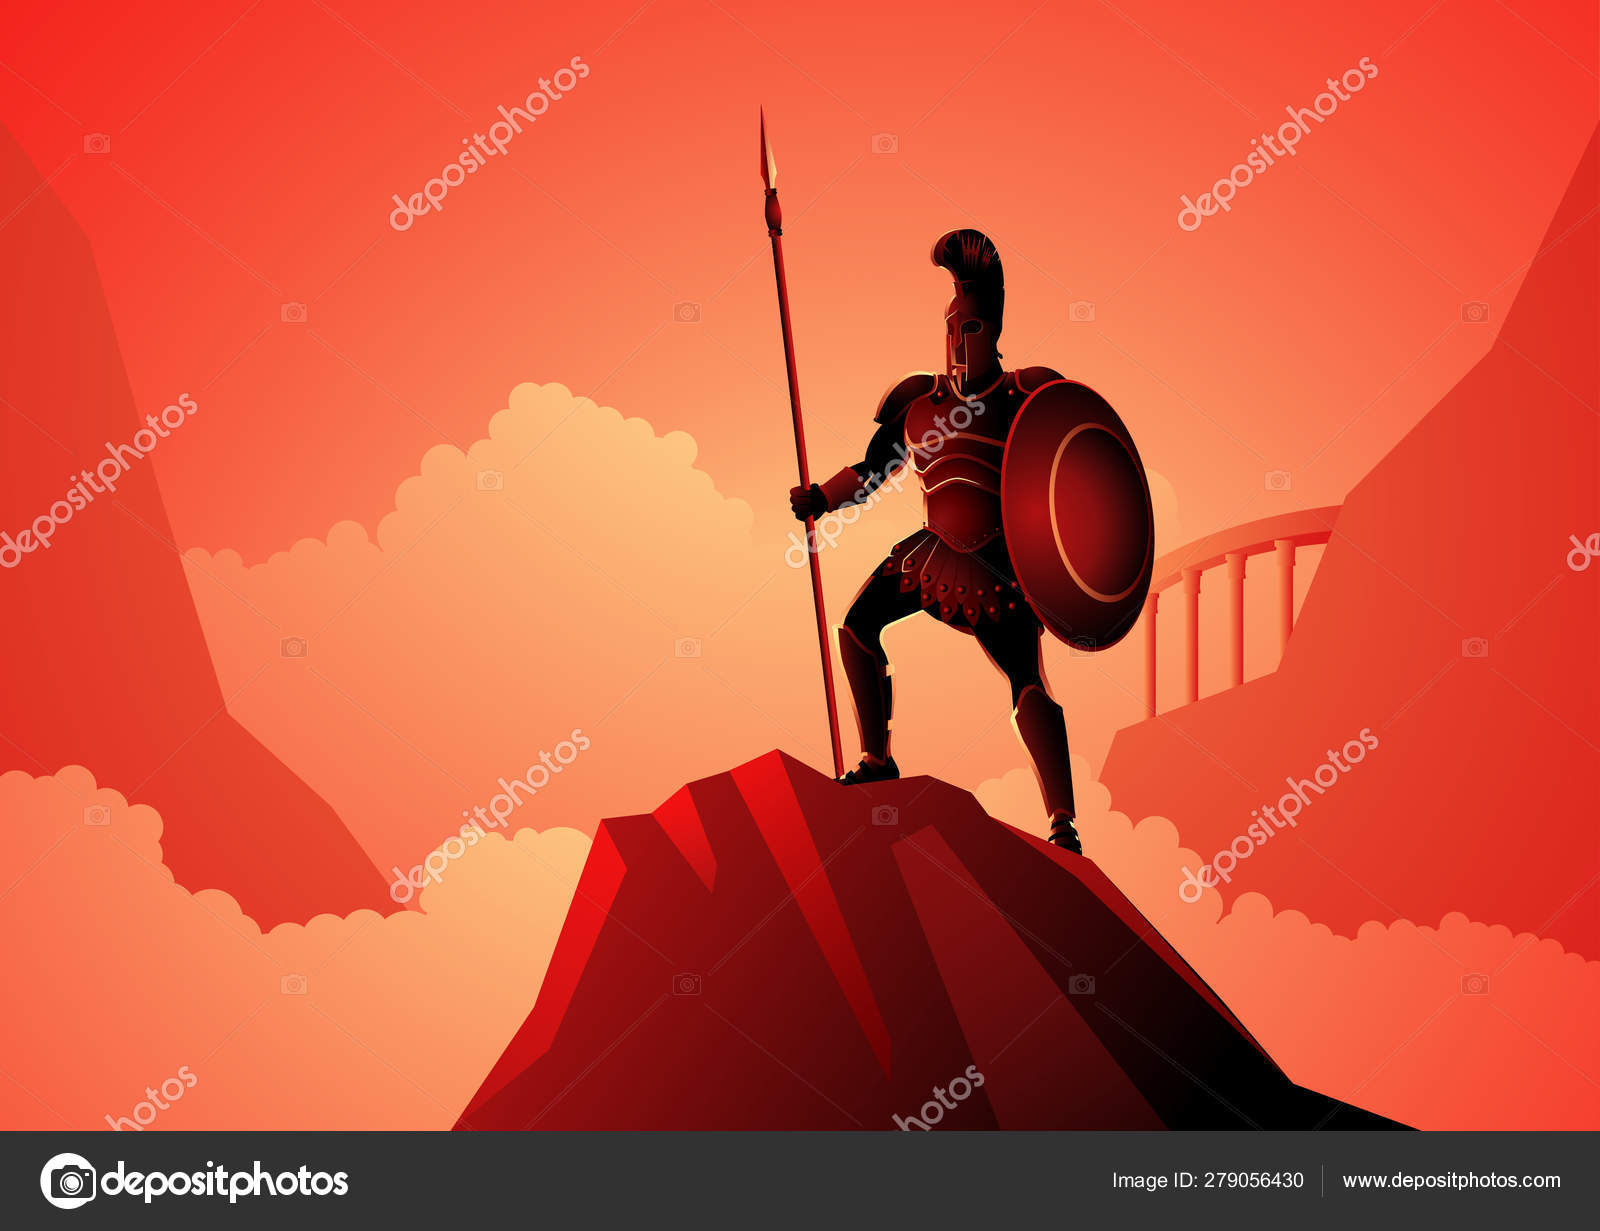 Ares The Greek God Of War Stock Vector C Rudall30 279056430